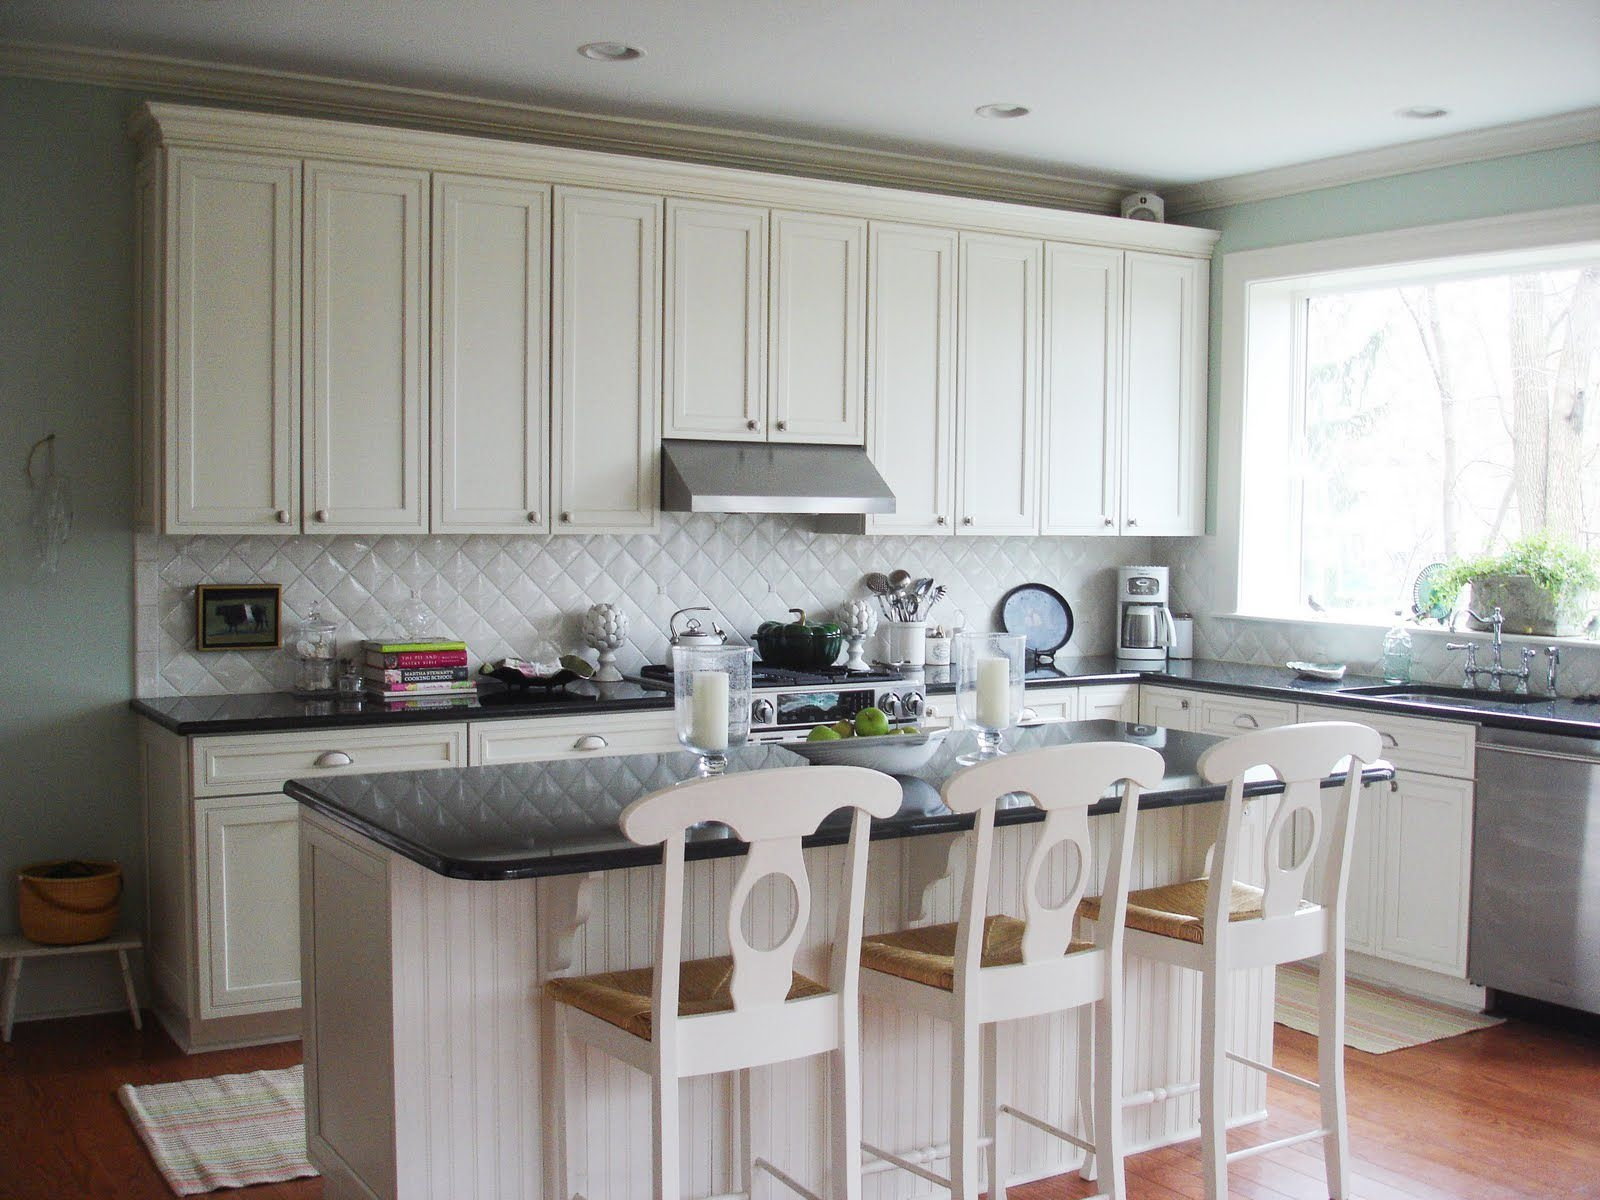 Ideas, delta faucet allen wrench size delta faucet allen wrench size kitchen granite kitchen countertop finishes height of island 1600 x 1200  .